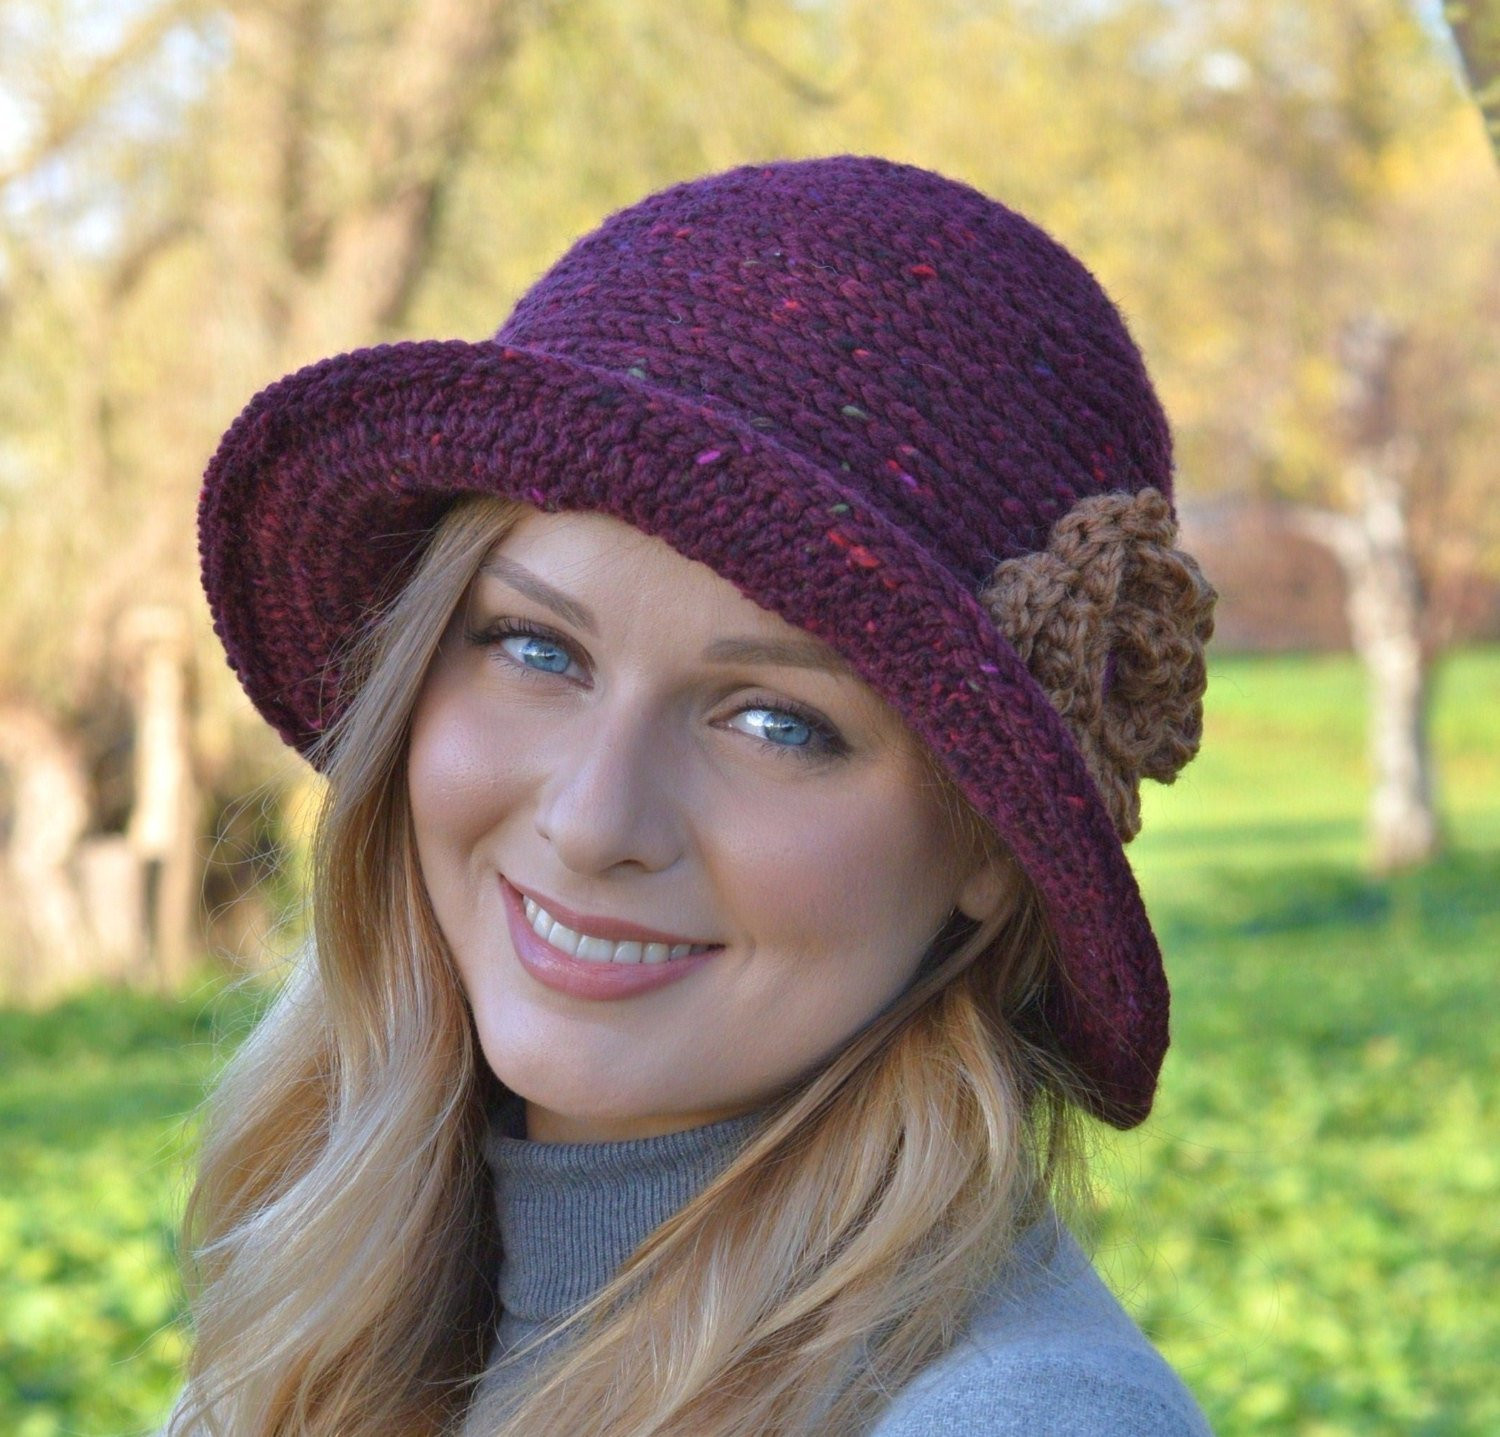 Best Of Crochet Pattern Downton Abbey Cloche Hat Easy Crochet Hat Easy Crochet Beanie Pattern Of Awesome A Variety Of Free Crochet Hat Patterns for Making Hats Easy Crochet Beanie Pattern